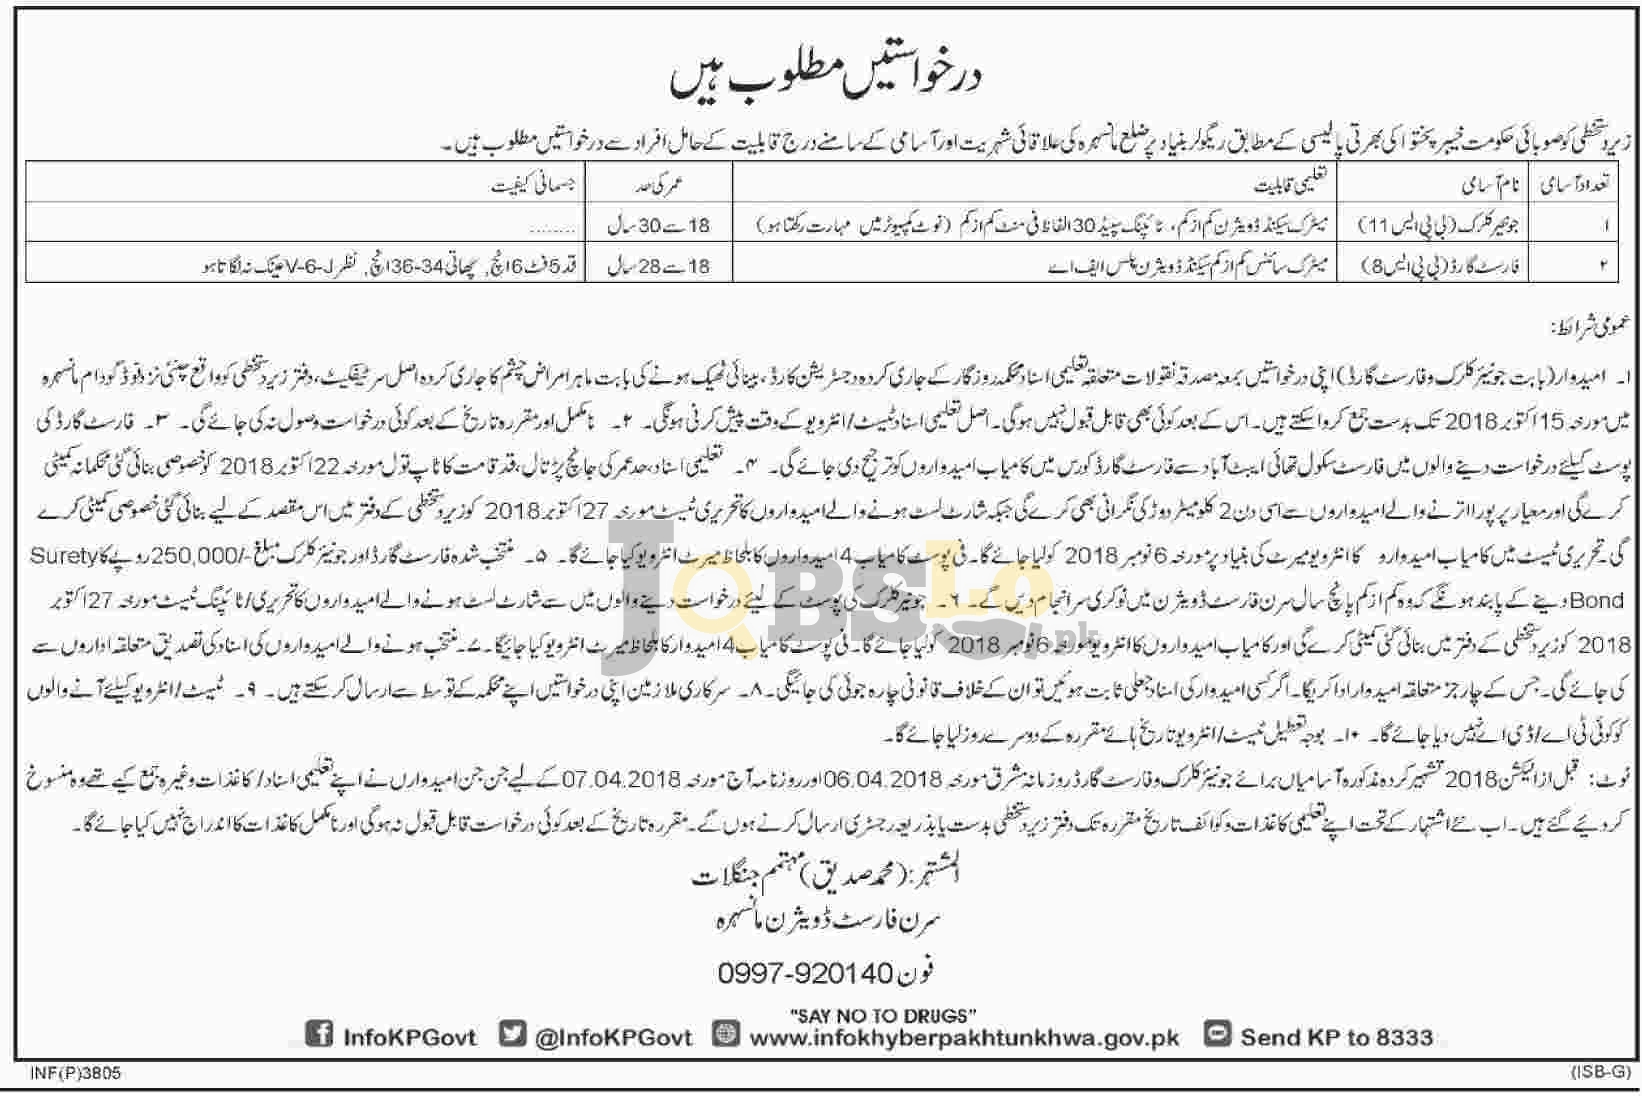 Forest Department KPK Jobs 2018 For Division Mansehra Latest